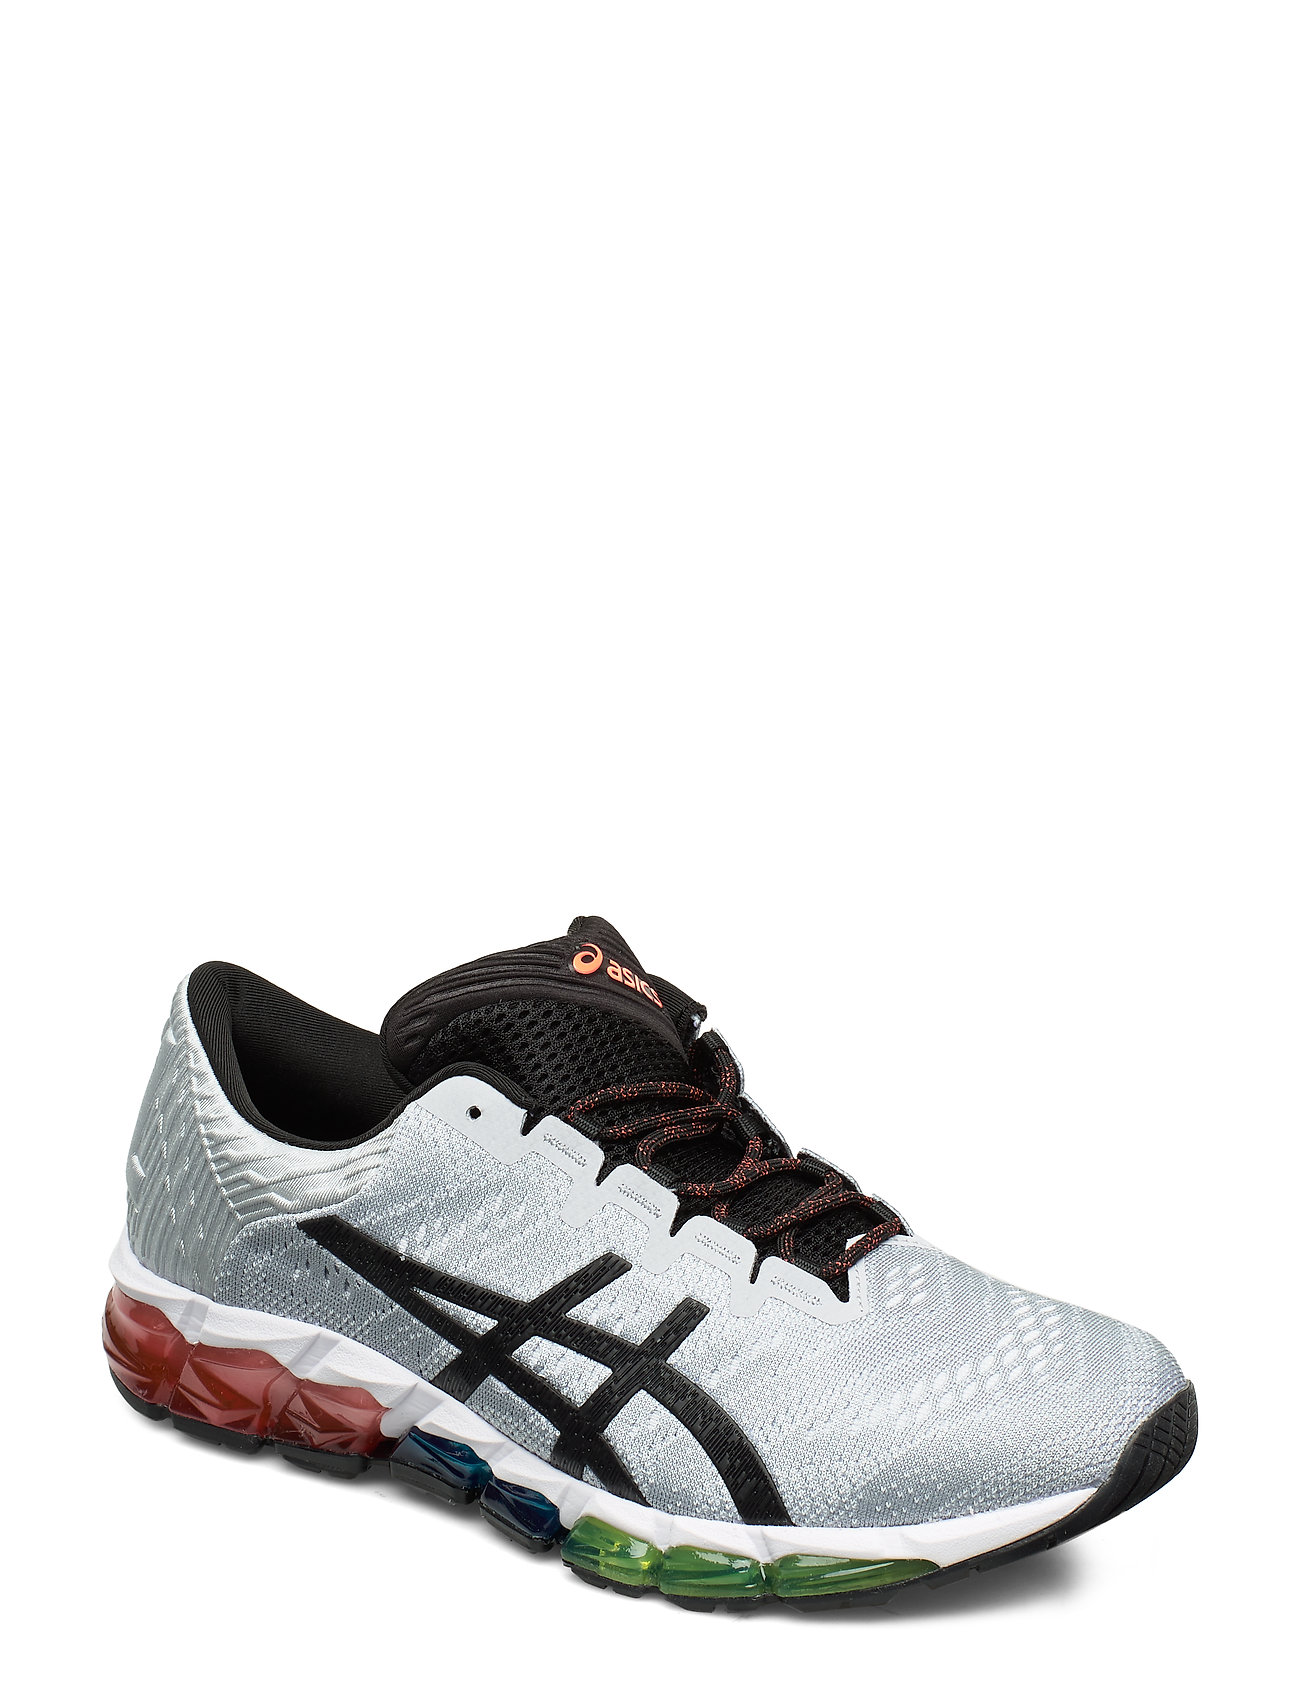 ASICS Gel-Quantum 360 5 Jcq Shoes Sport Shoes Running Shoes Grau ASICS